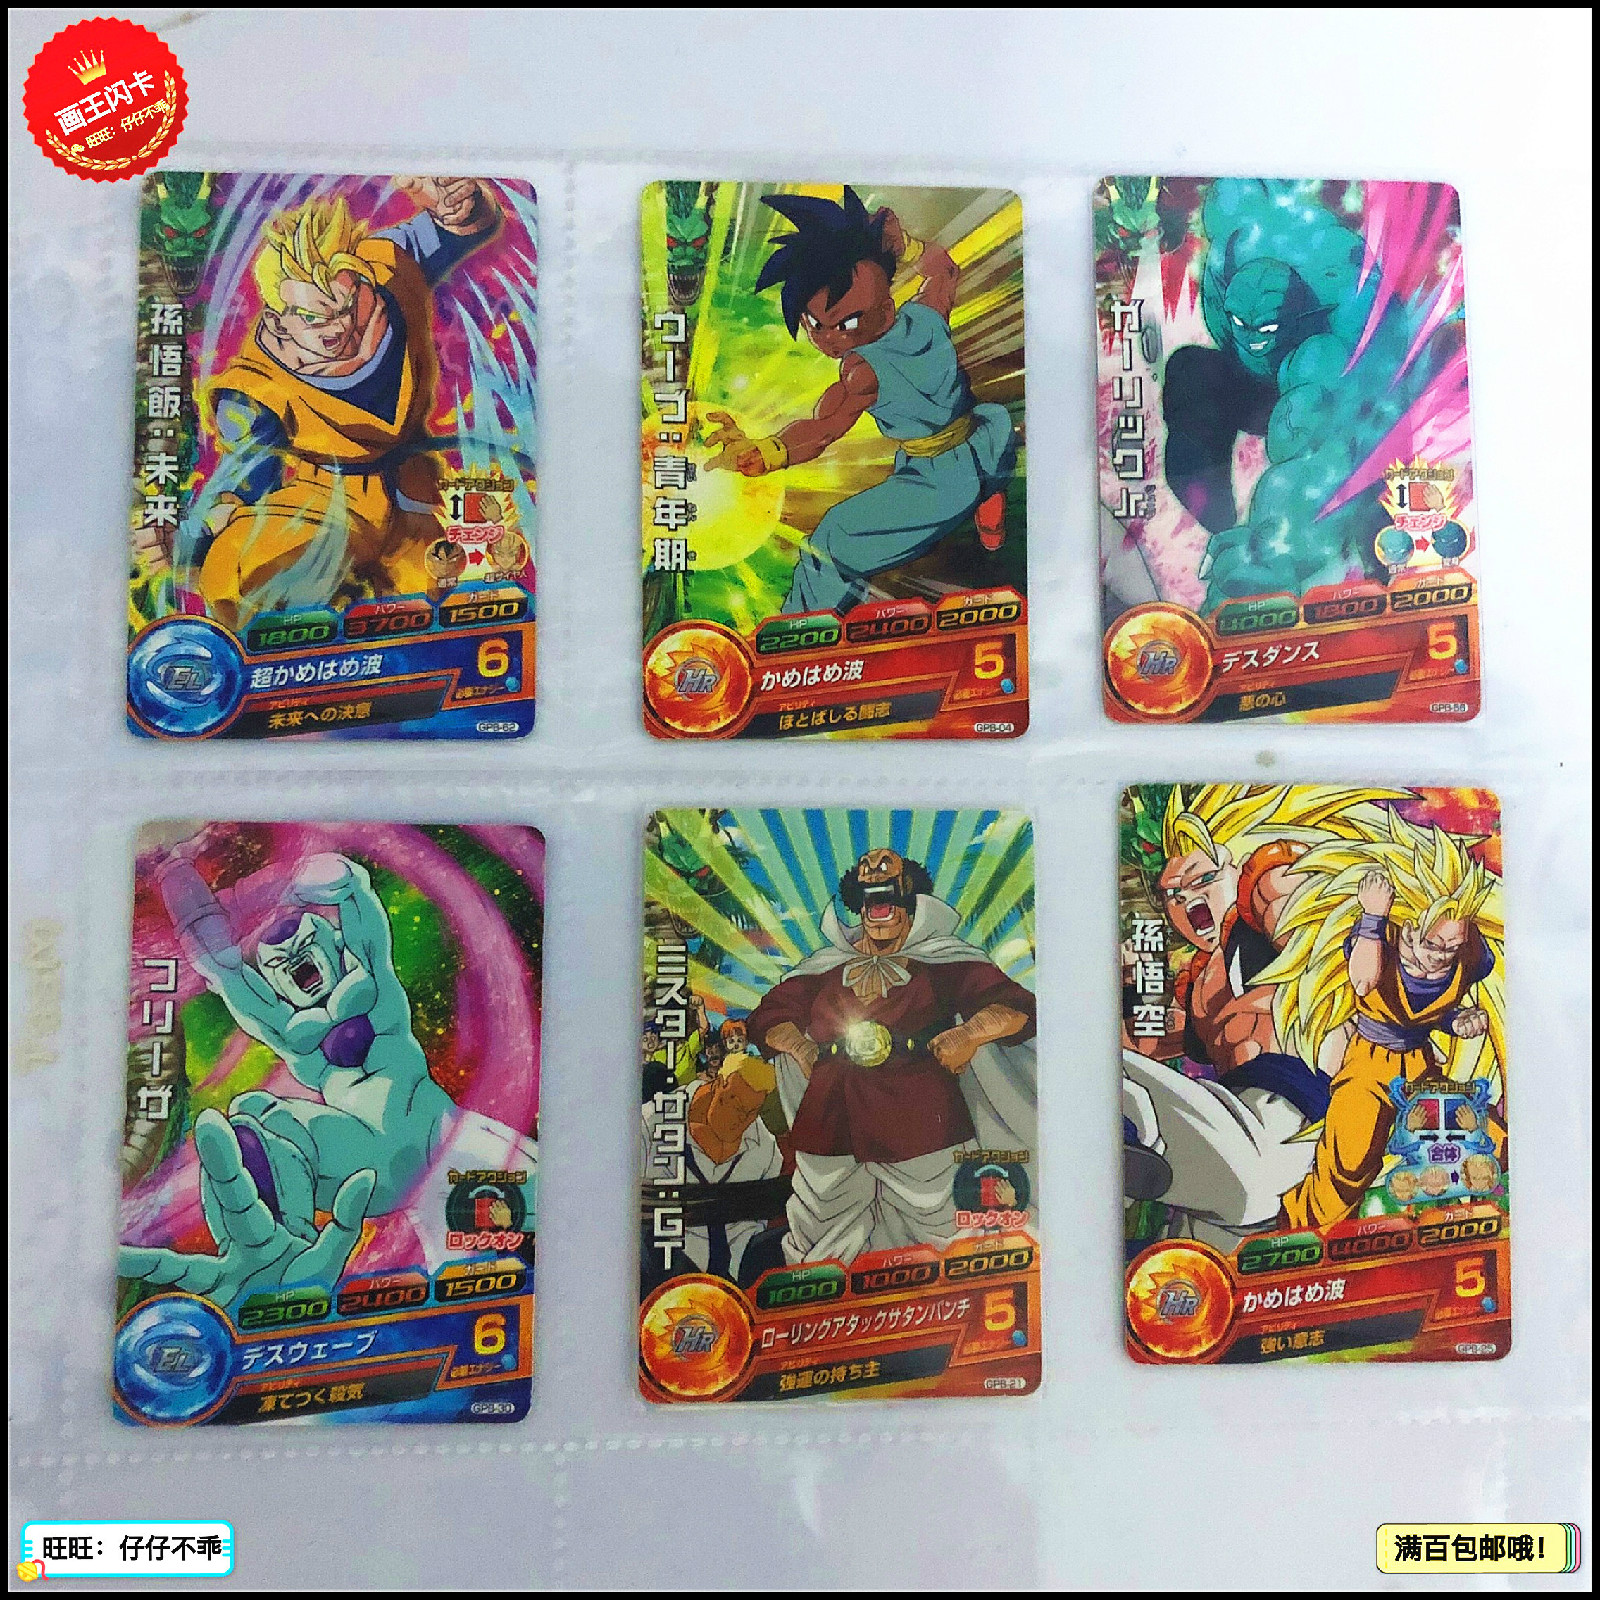 Japan Original Dragon Ball Hero Card GPB  Goku Toys Hobbies Collectibles Game Collection Anime Cards